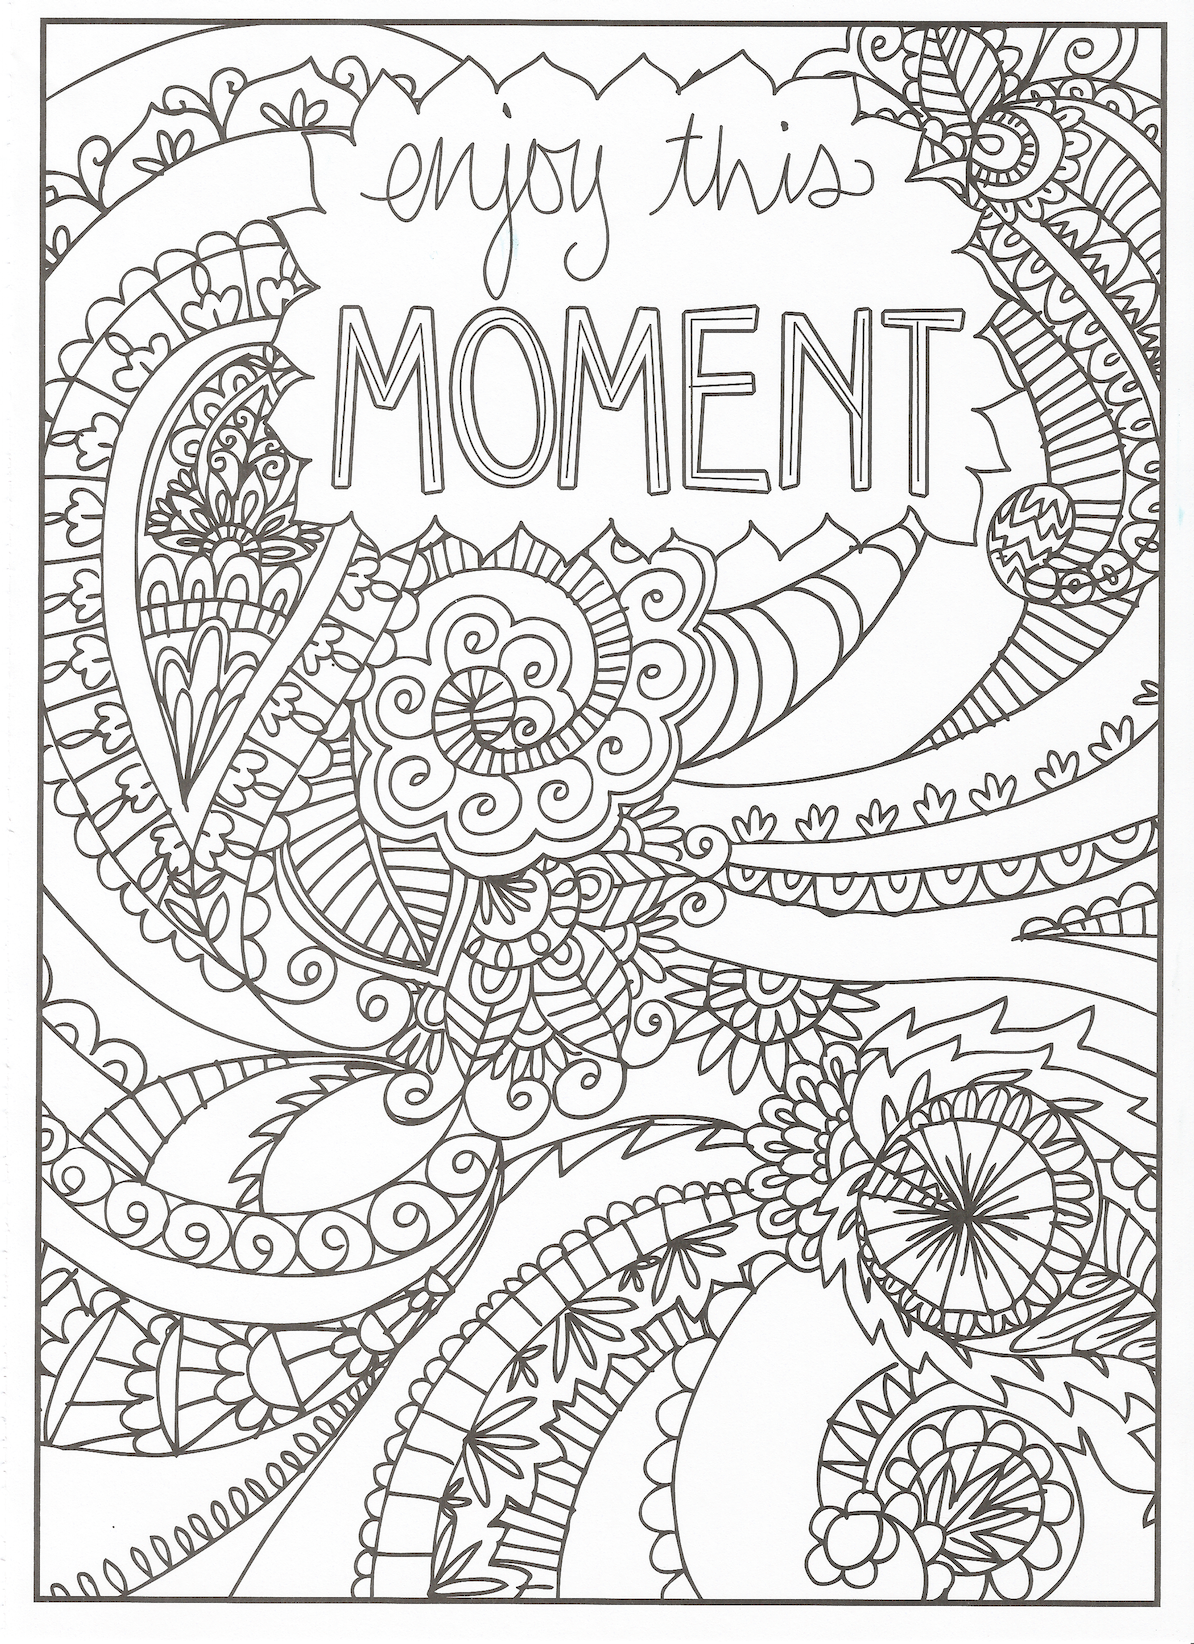 Timeless Creations Creative Quotes Coloring Page Family Is My Anchor Quote Coloring Pages Creation Coloring Pages Coloring Books